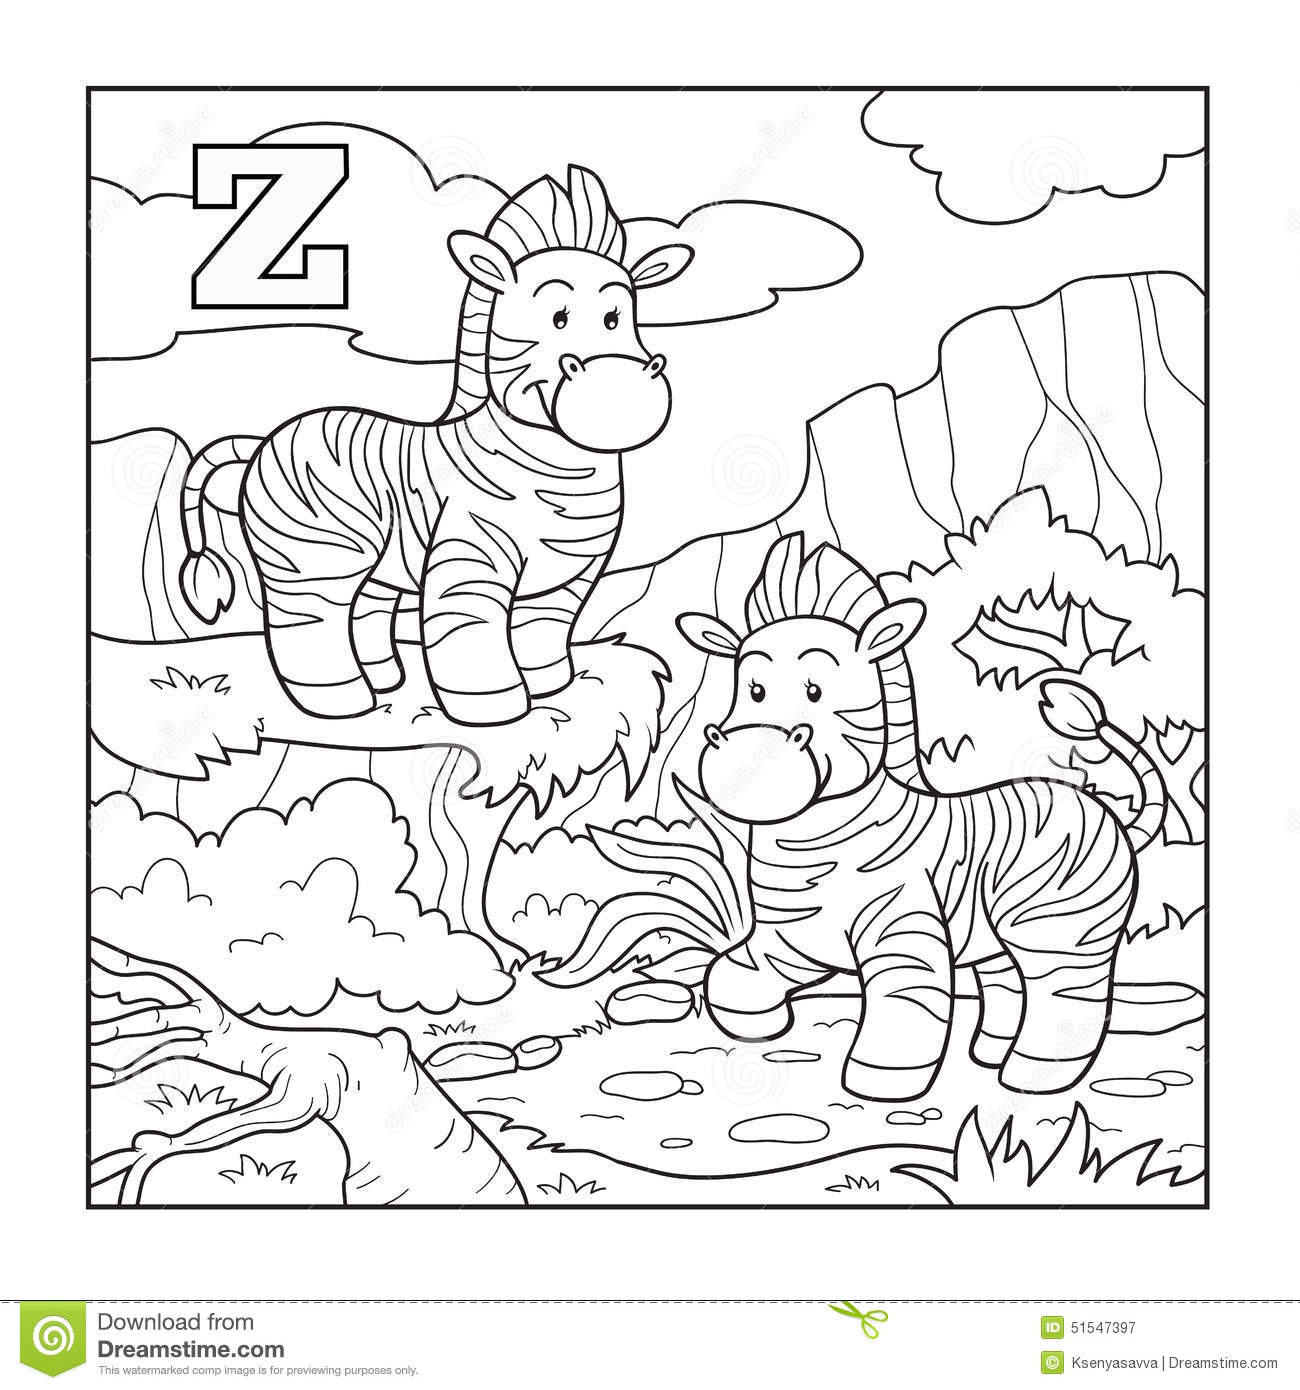 Children coloring book software